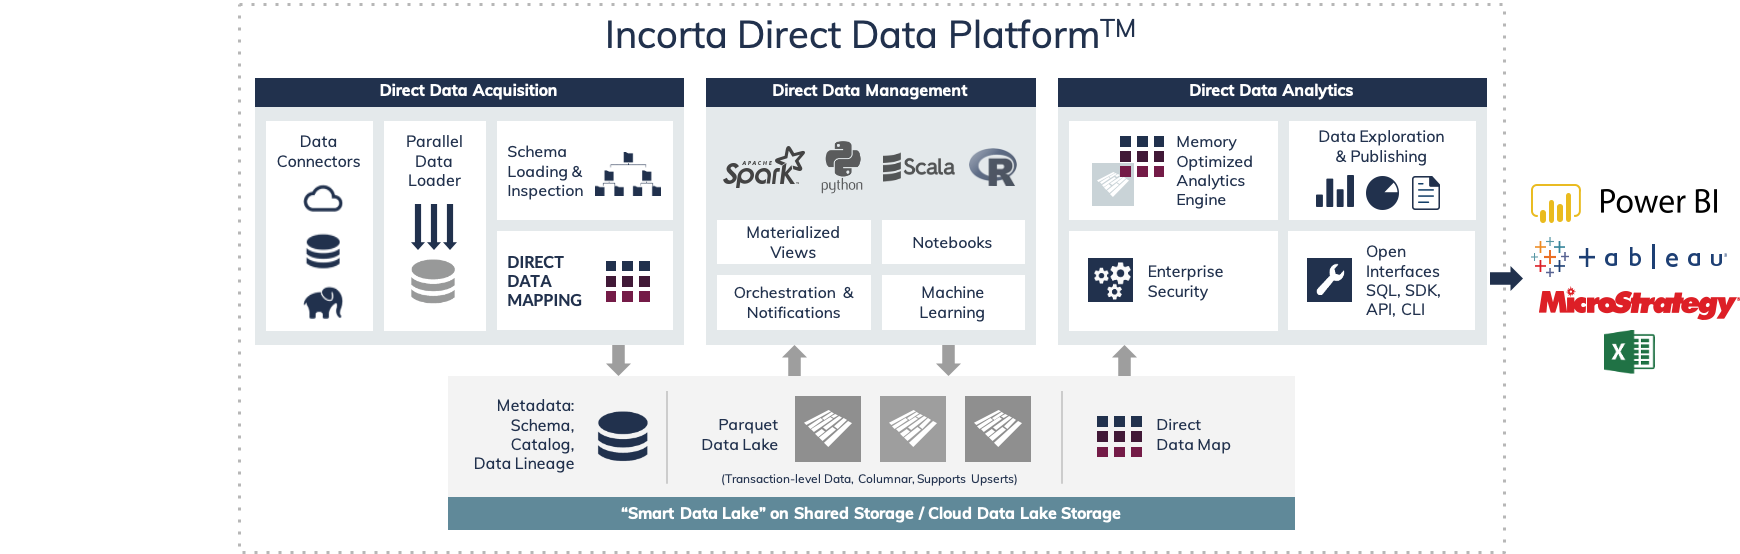 incorta-direct-data-platform